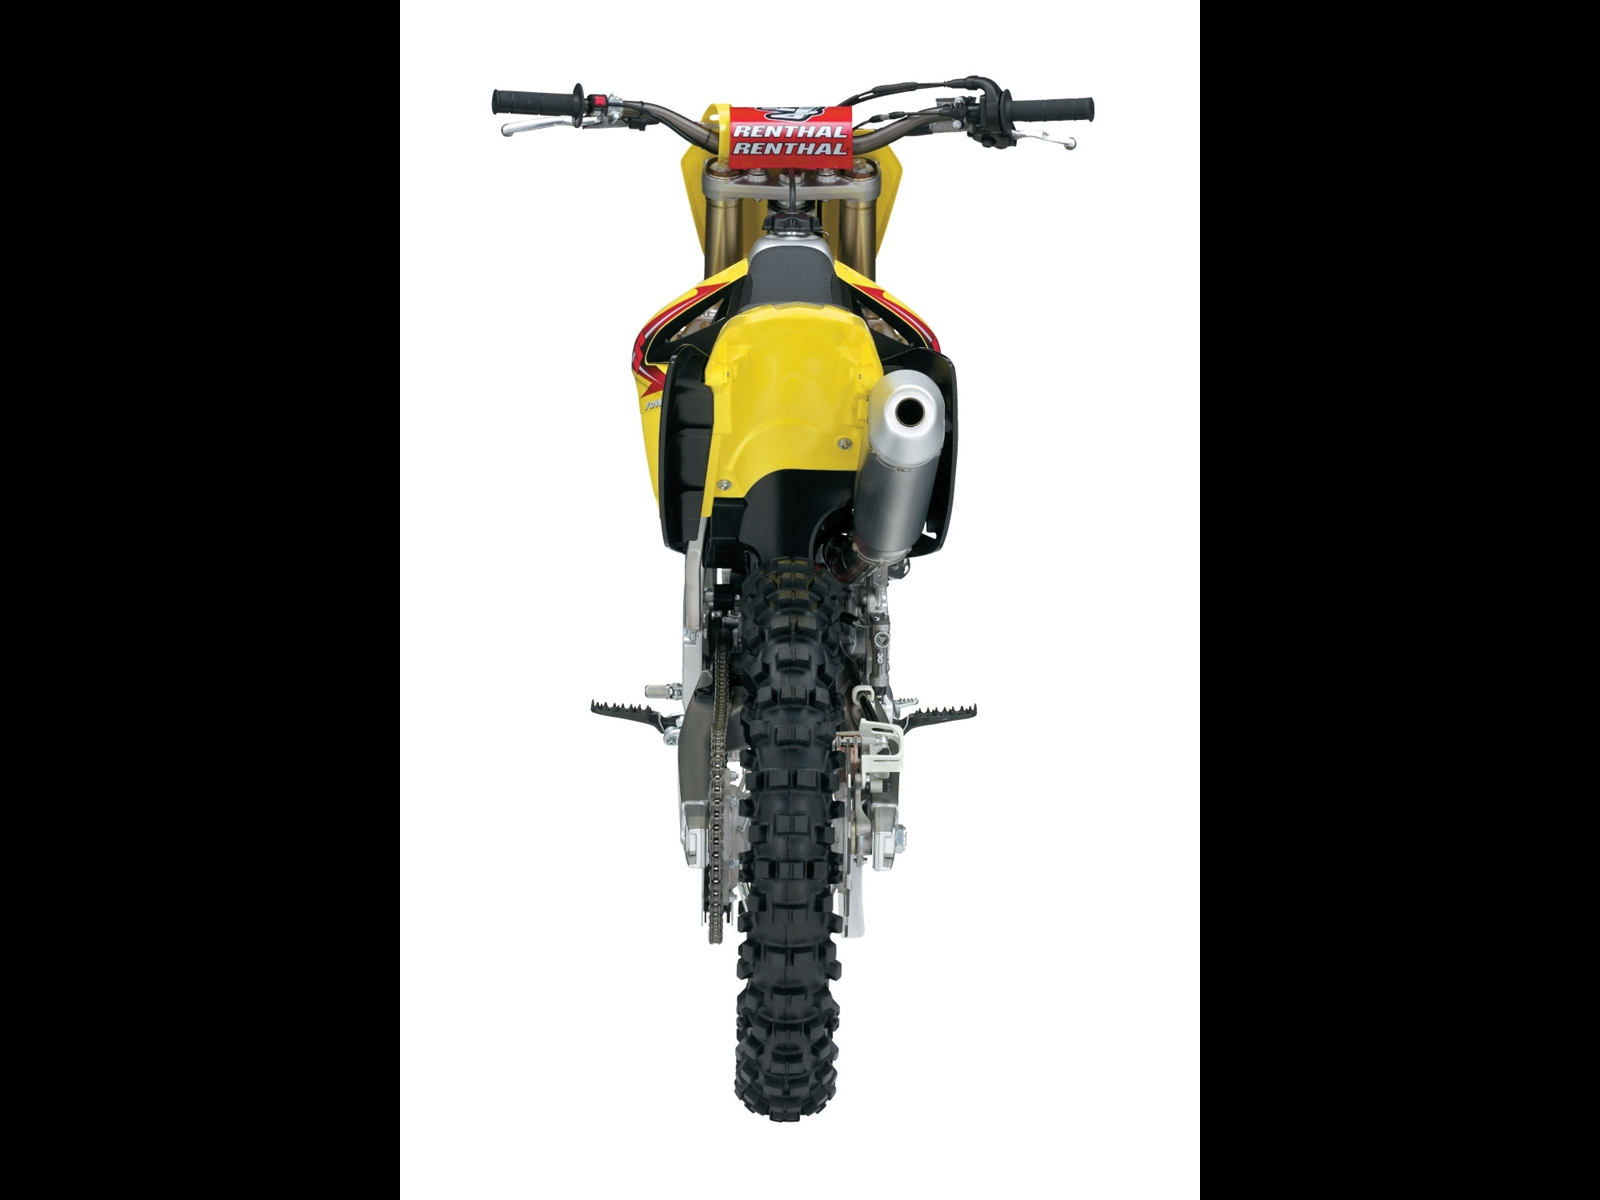 2012 Suzuki RM-Z250 | Top Speed